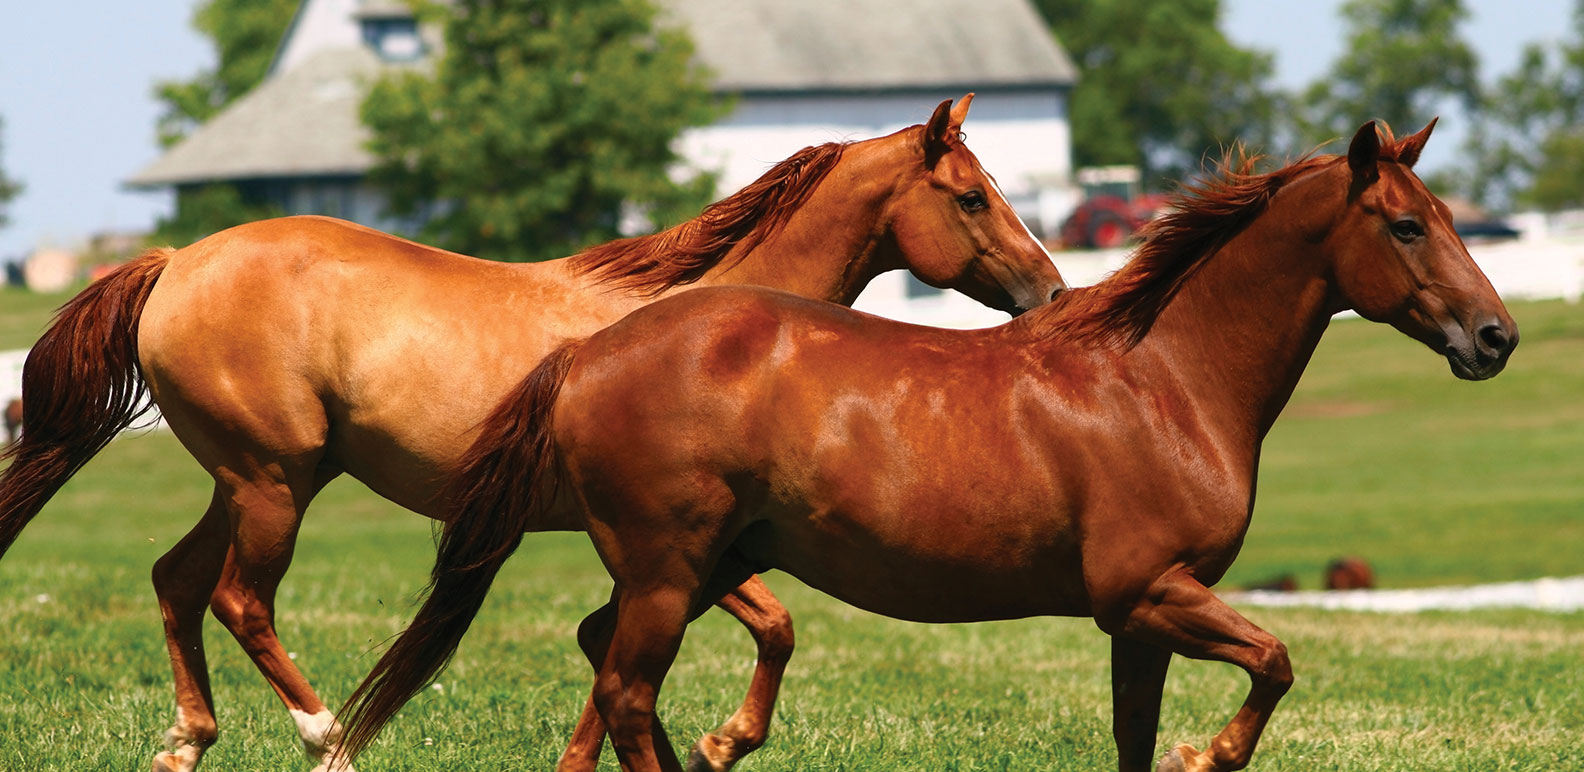 Horse High Quality Background on Wallpapers Vista